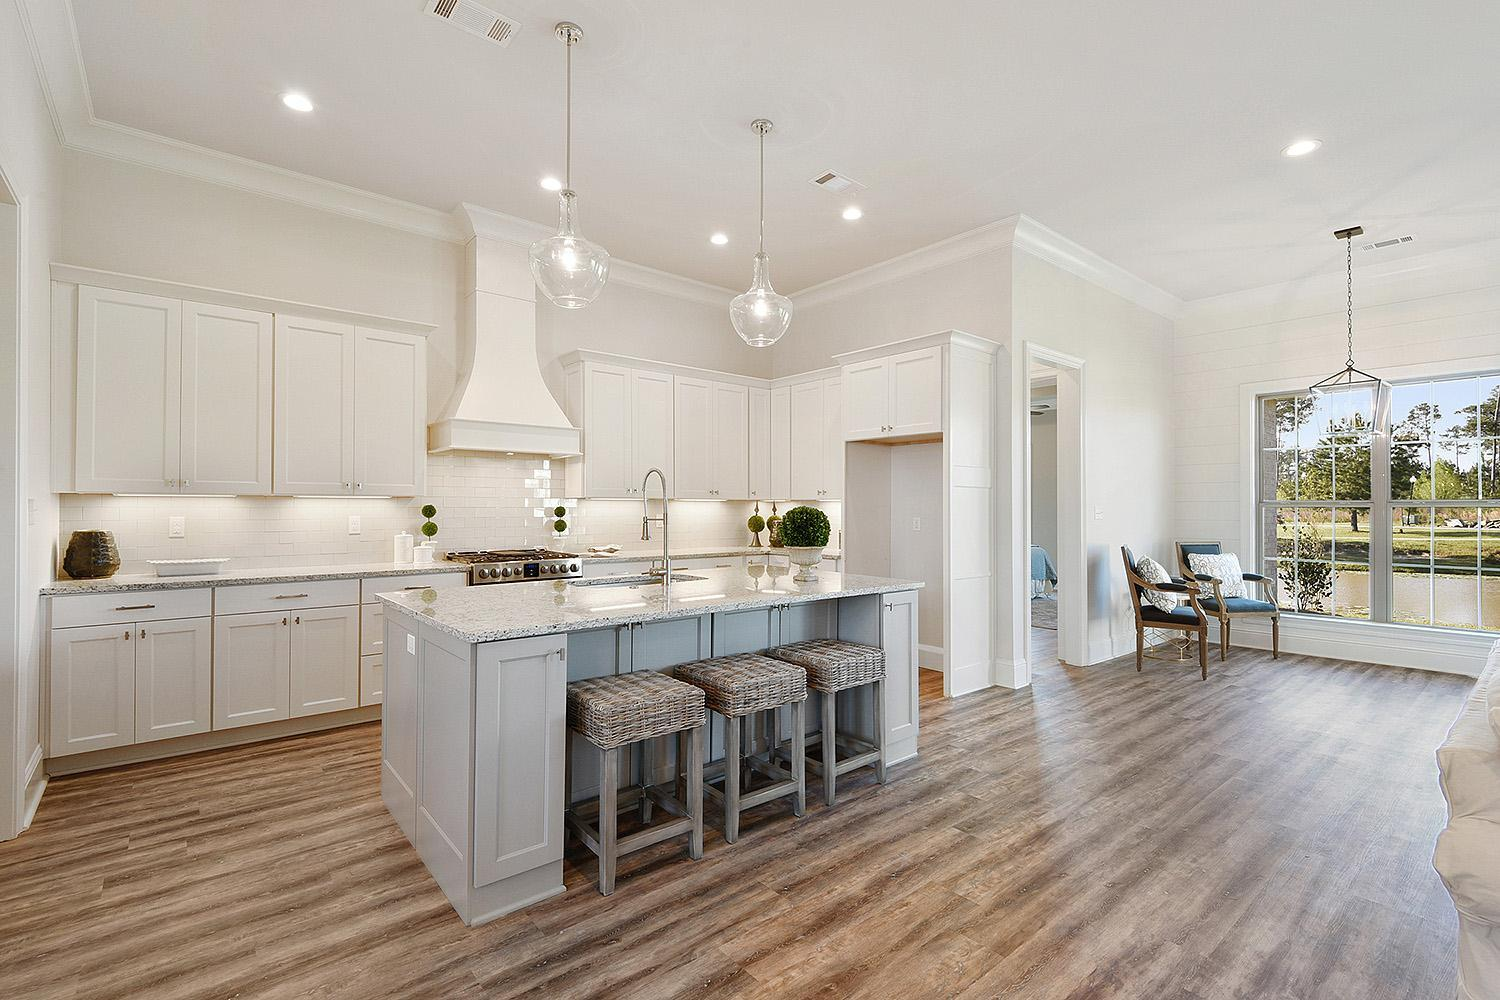 Kitchen featured in the Camille By Highland Homes in New Orleans, LA